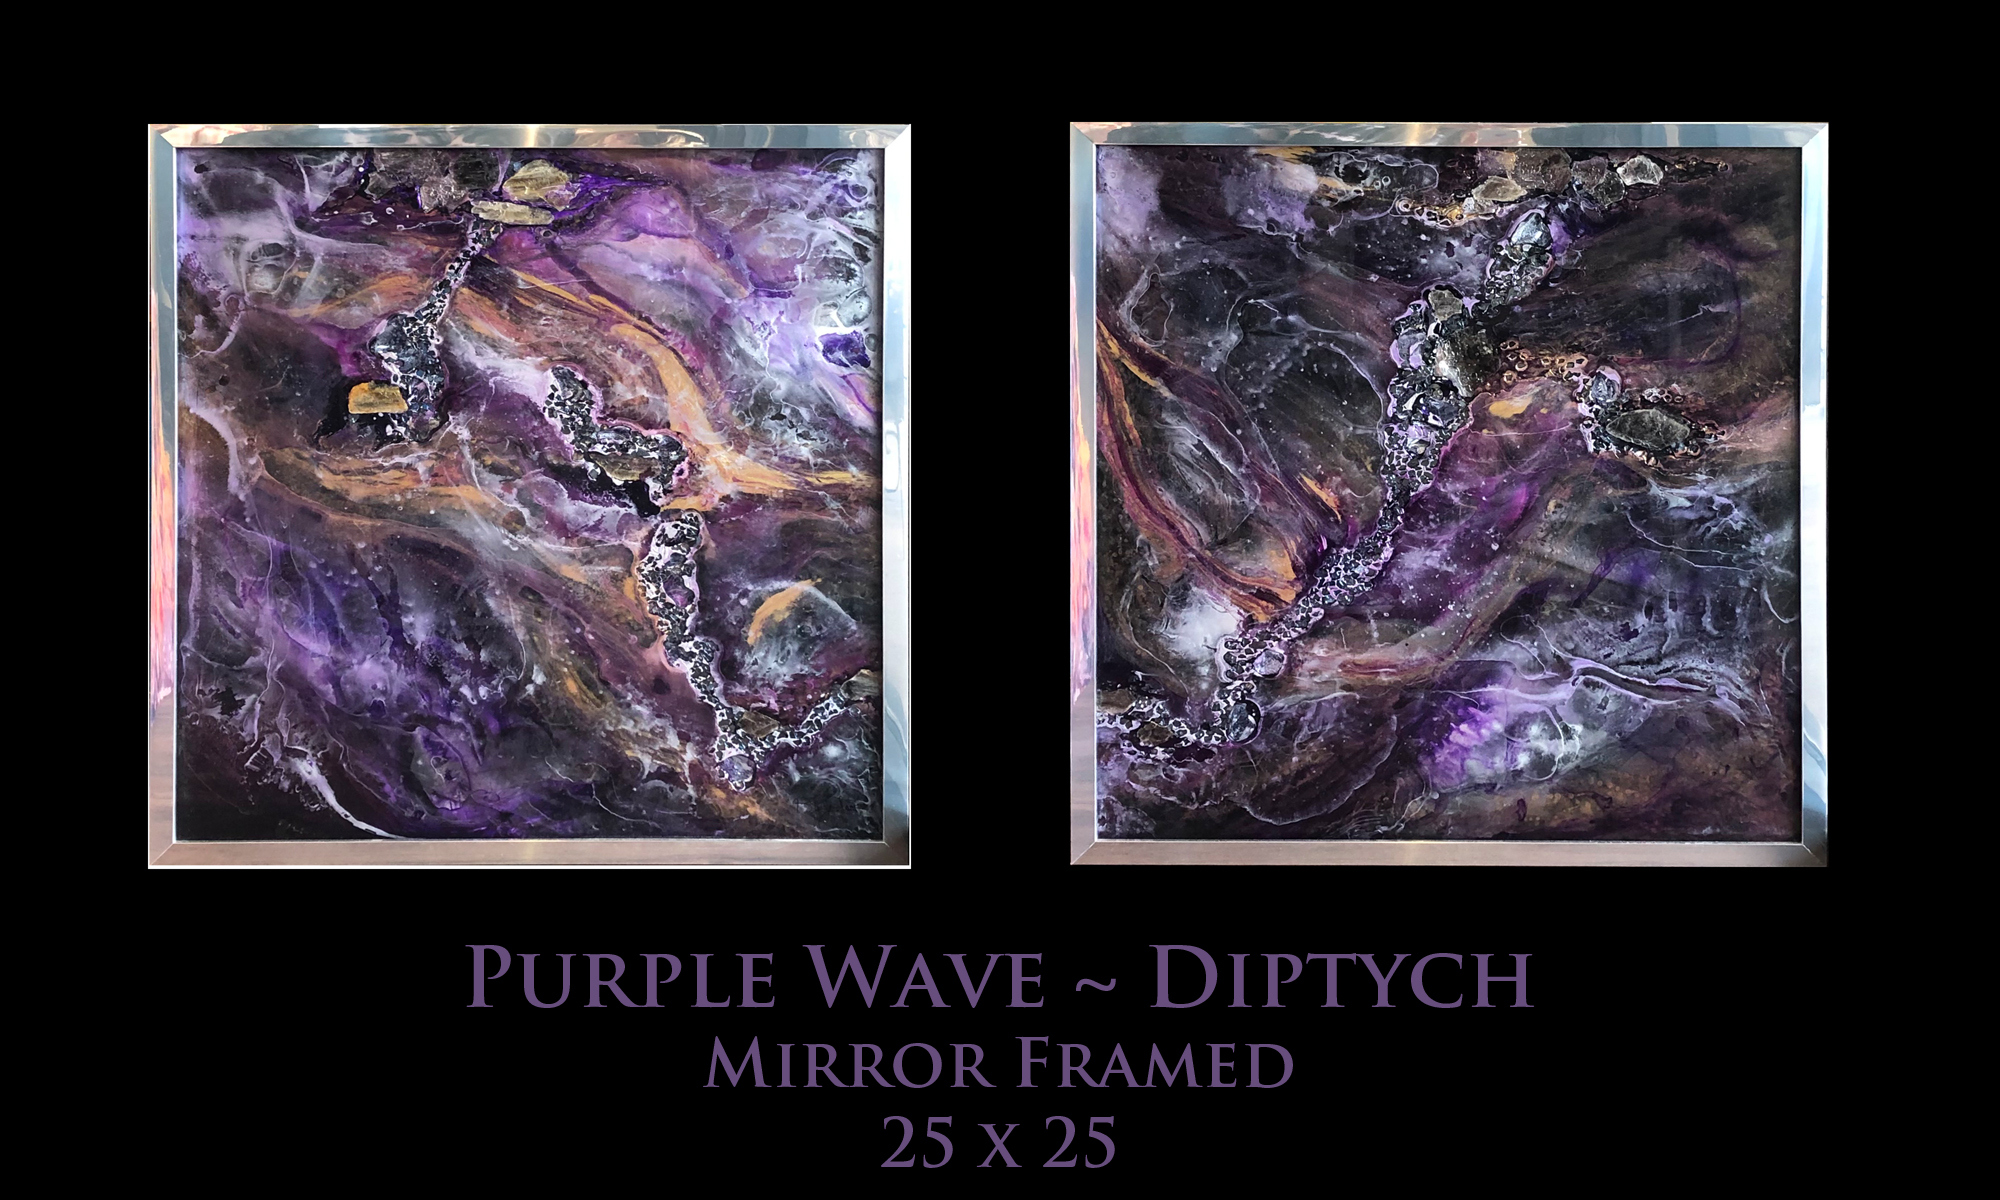 Purple Waves ~ Diptych